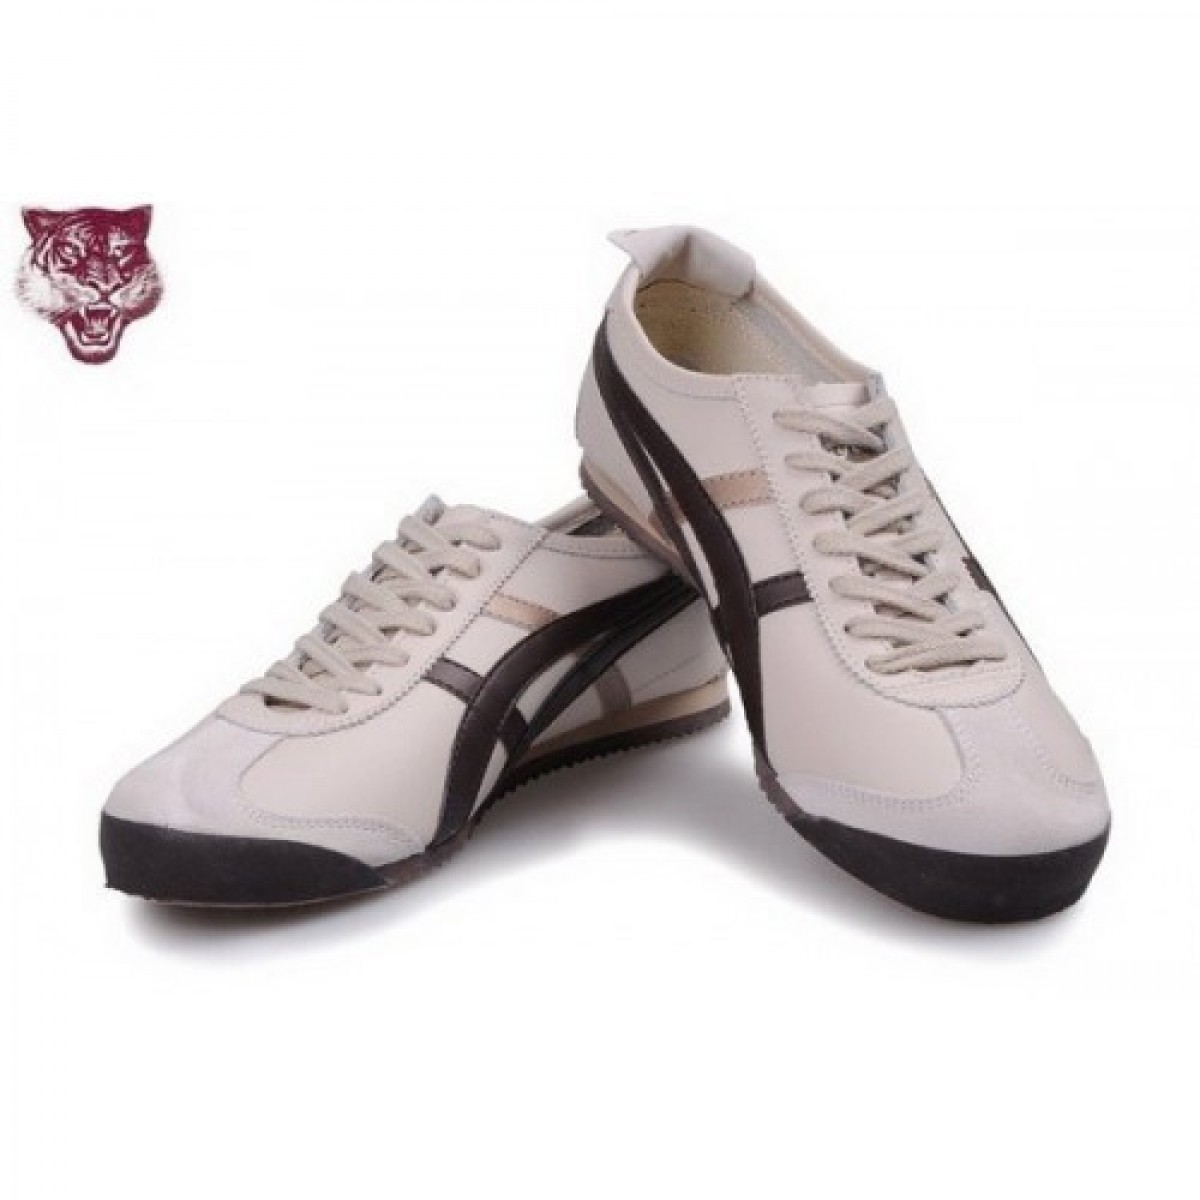 RV0696 Soldes Asics Onitsuka Tiger Kanuchi Chaussures Beige Brown or Chaussures 14546570 Pas Cher